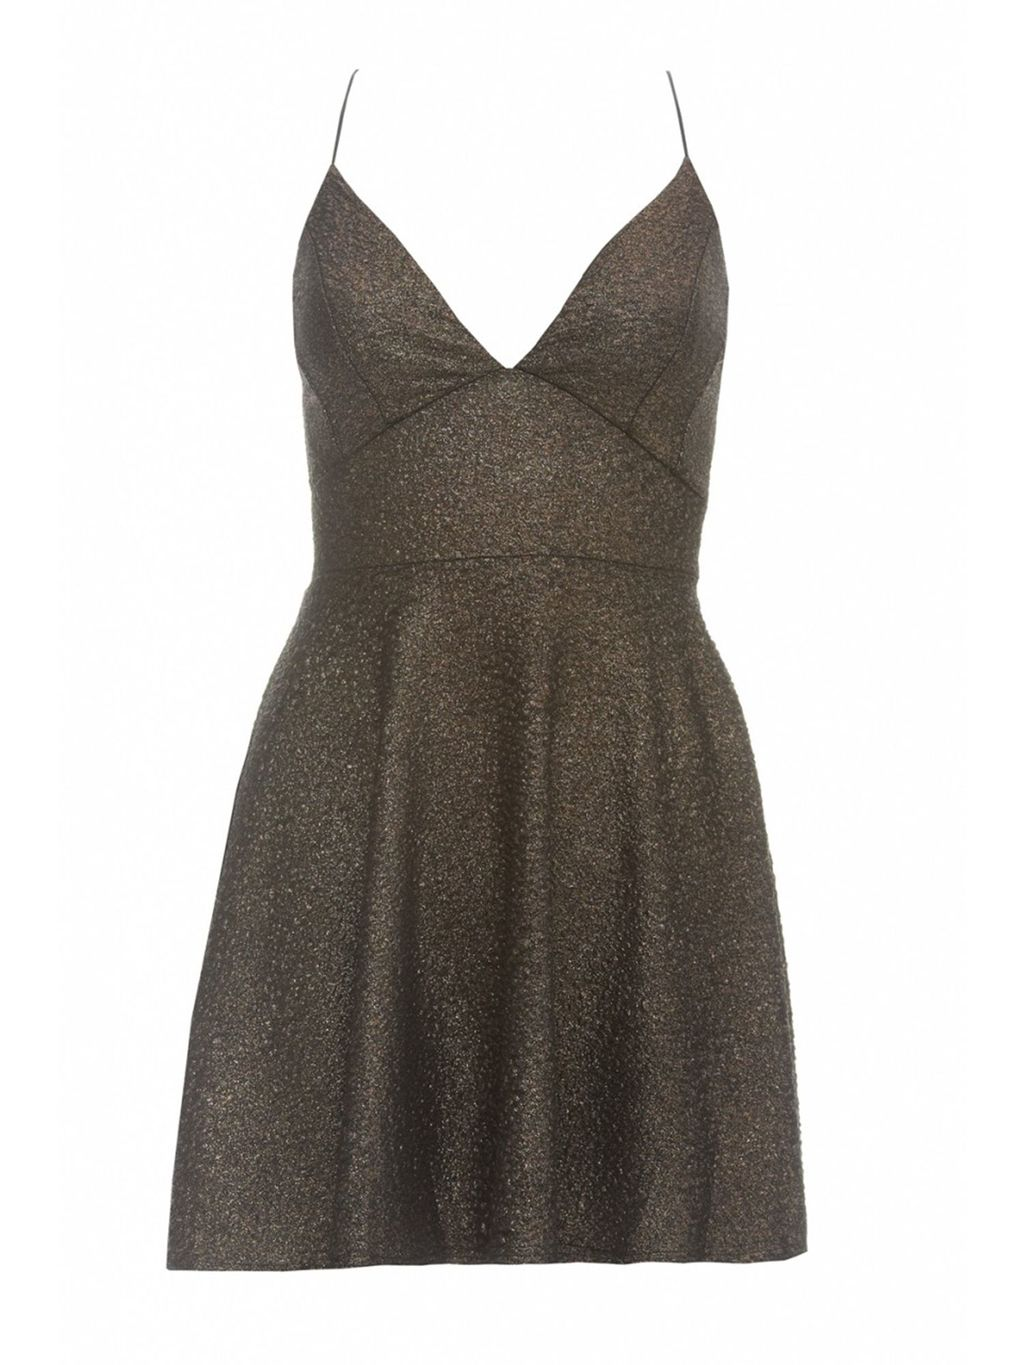 Sleeveless Metallic Skater Dress, Bronze - style: empire line; length: mini; neckline: low v-neck; fit: empire; pattern: plain; sleeve style: sleeveless; predominant colour: gold; occasions: evening; back detail: crossover; sleeve length: sleeveless; pattern type: fabric; texture group: jersey - stretchy/drapey; season: a/w 2015